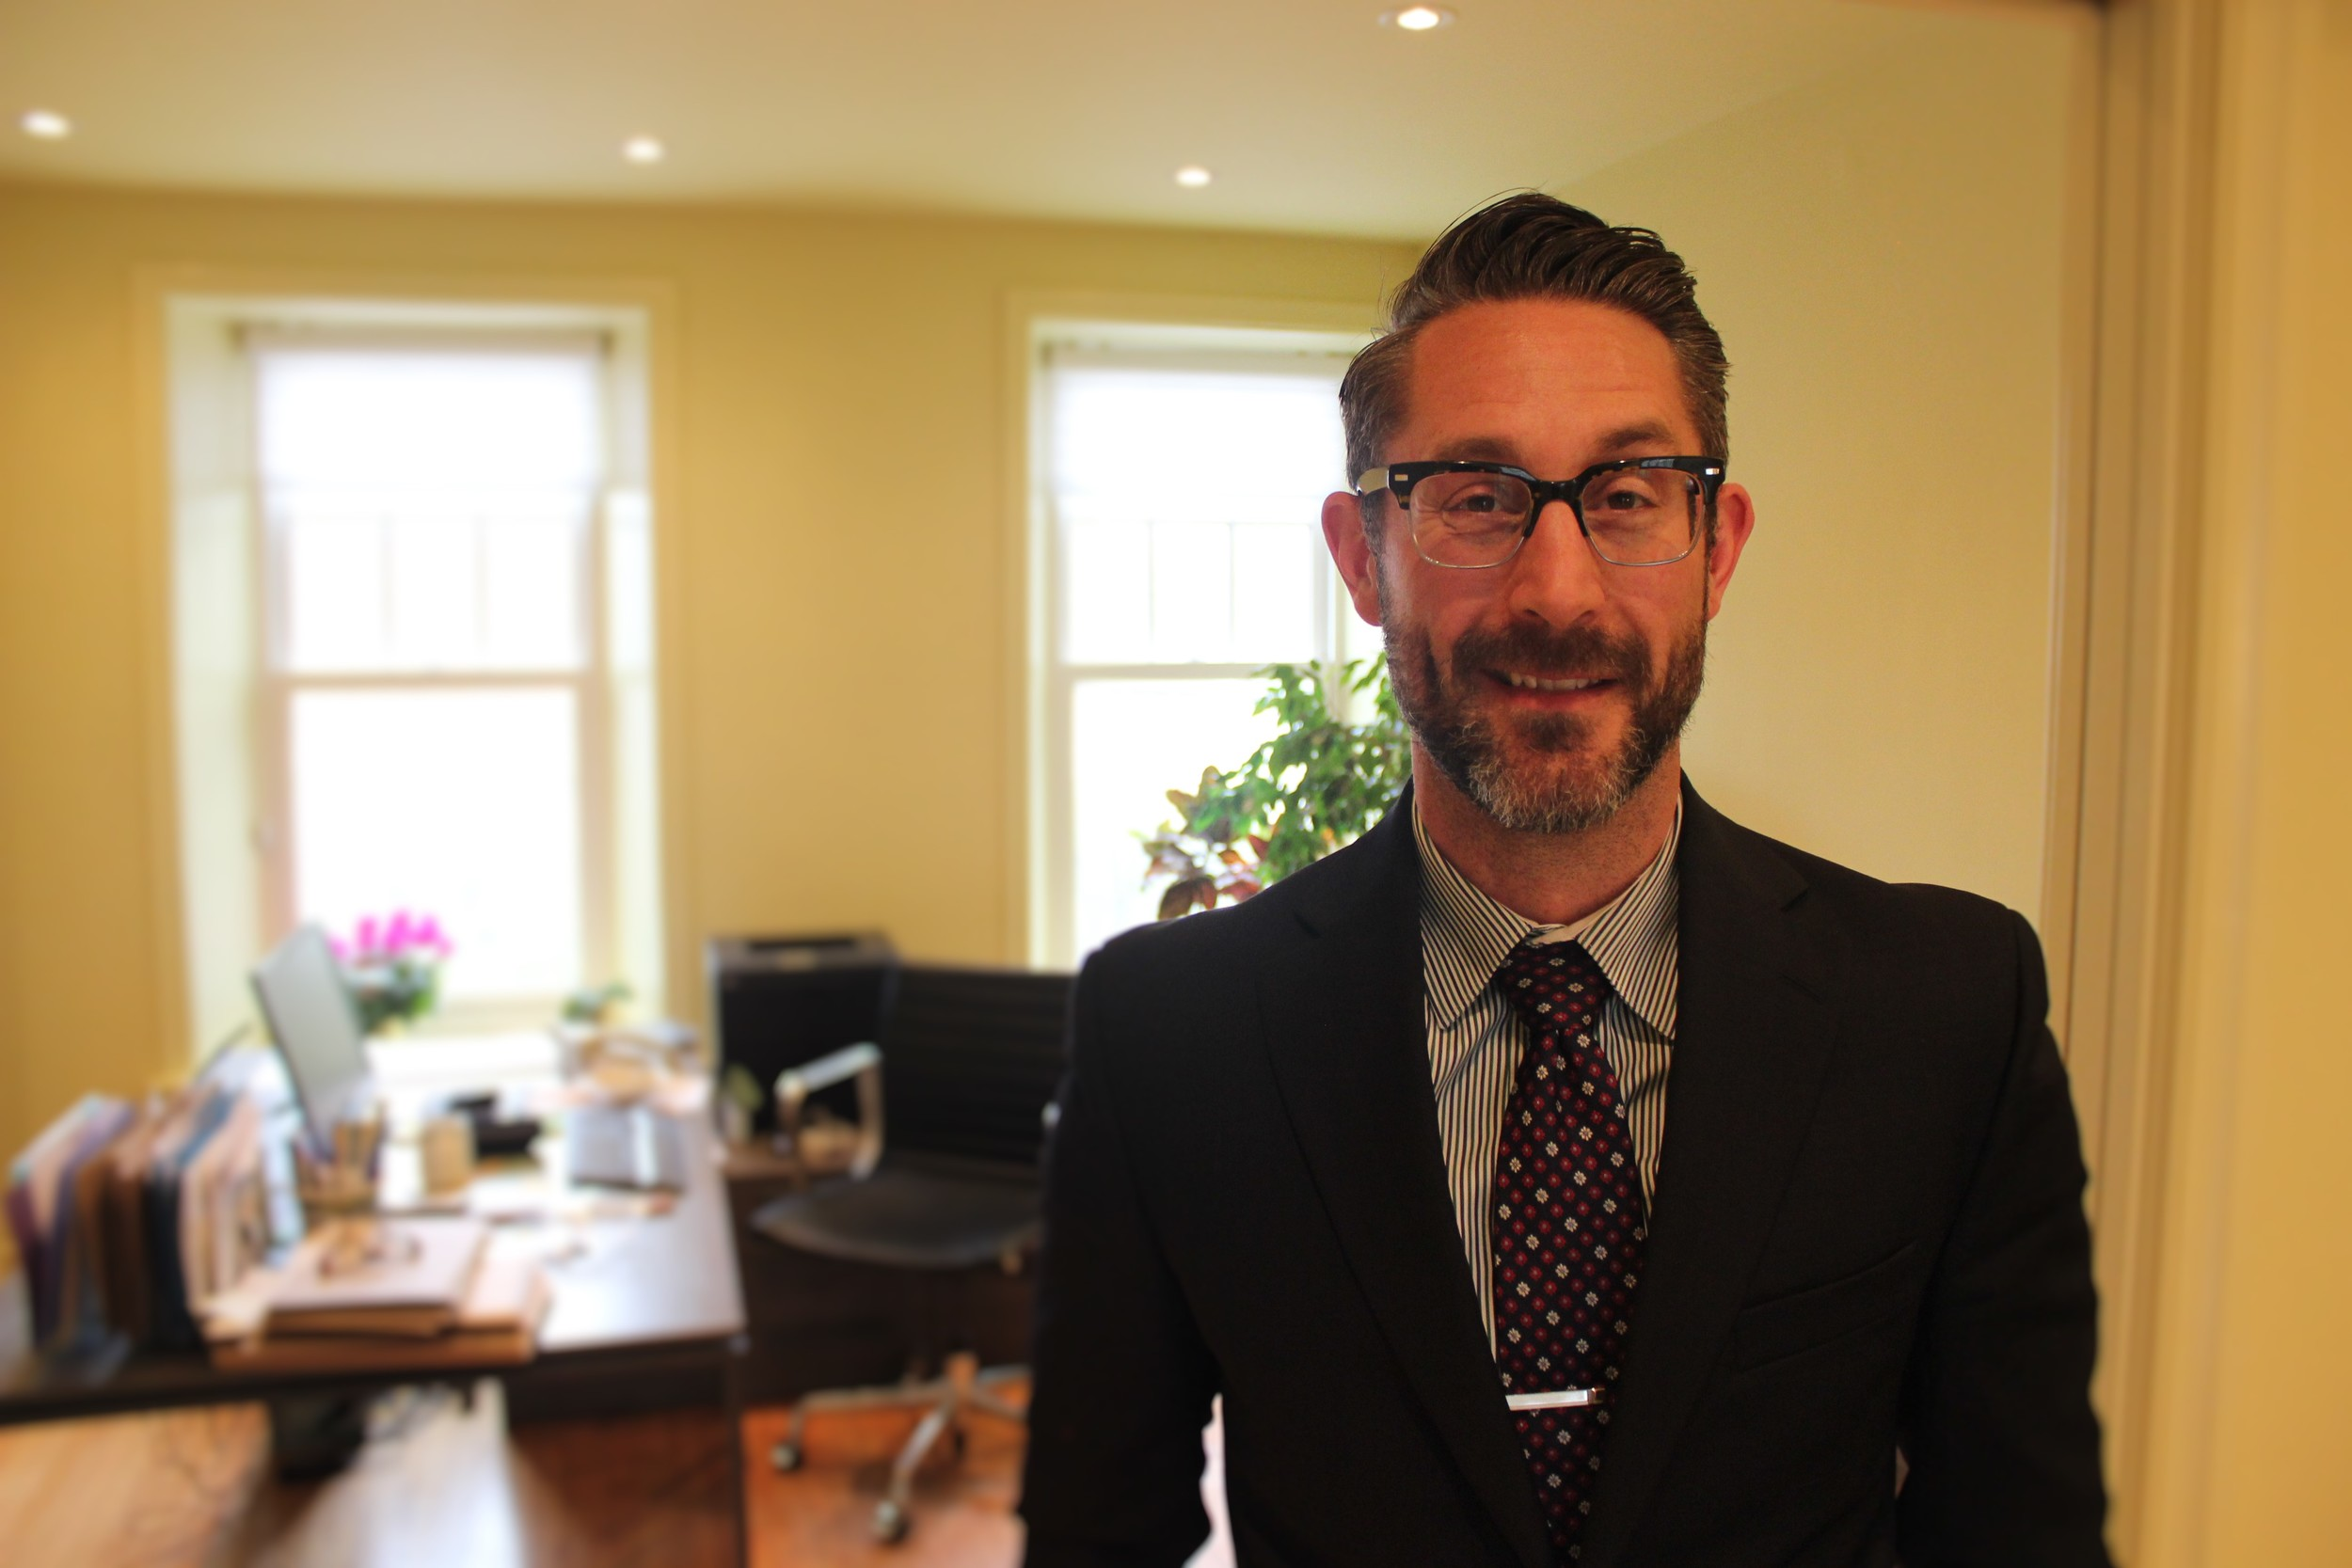 ROBERT A. SHELDON, B.A., J.D. - I received my law degree at the University of Windsor and was called to the bar in 2013. While at Windsor Law, I was the recipient of the 2011 Scotiabank award in Trusts, and achieved the highest standing out of the 2011 University of Windsor Mediation Services Clinic interns.Prior to opening my own firm, I was an Associate Lawyer with Bryna McLeod Lawyers - a boutique law firm with more than 35 years of real estate, wills + powers of attorney and corporate law experience in Guelph.I have two young sons, Rohays (